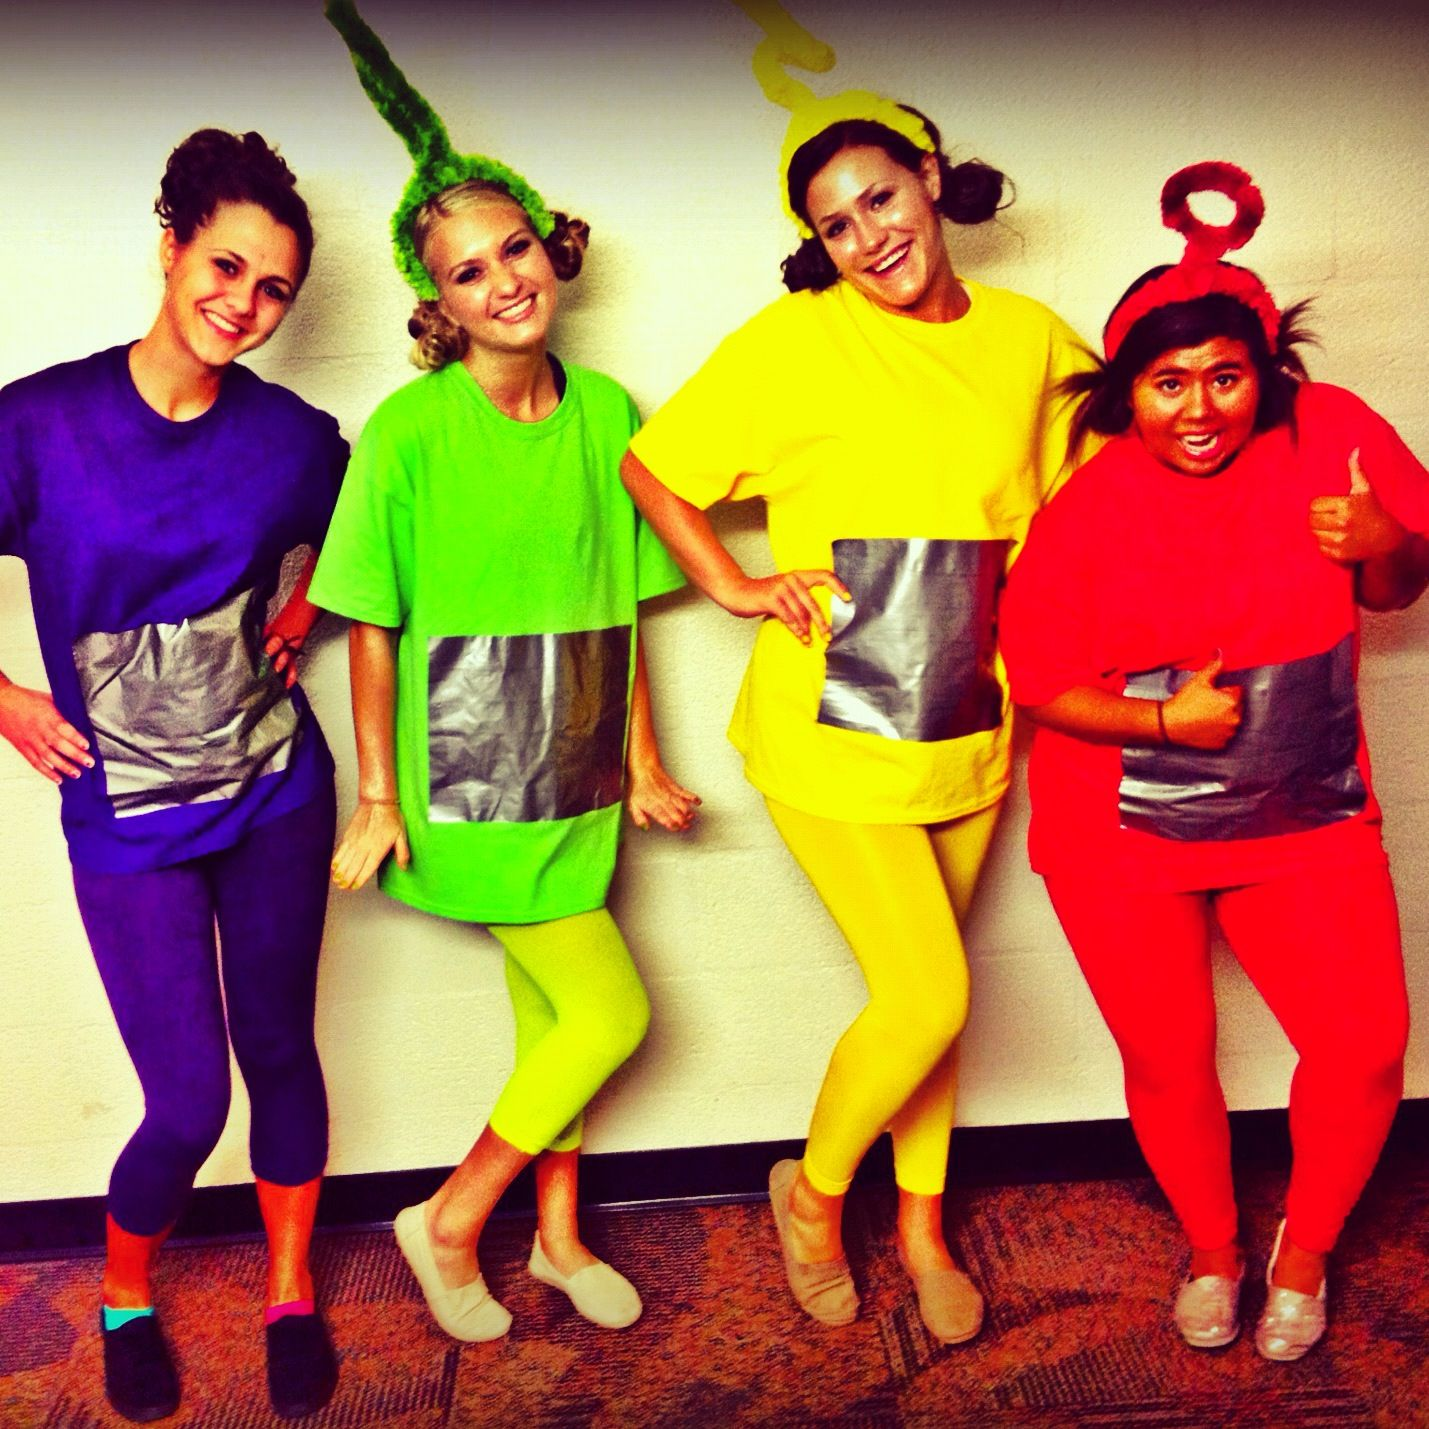 Homemade Disney Costume Ideas Homemade Teletubbies Halloween Costume And These Are My Friends